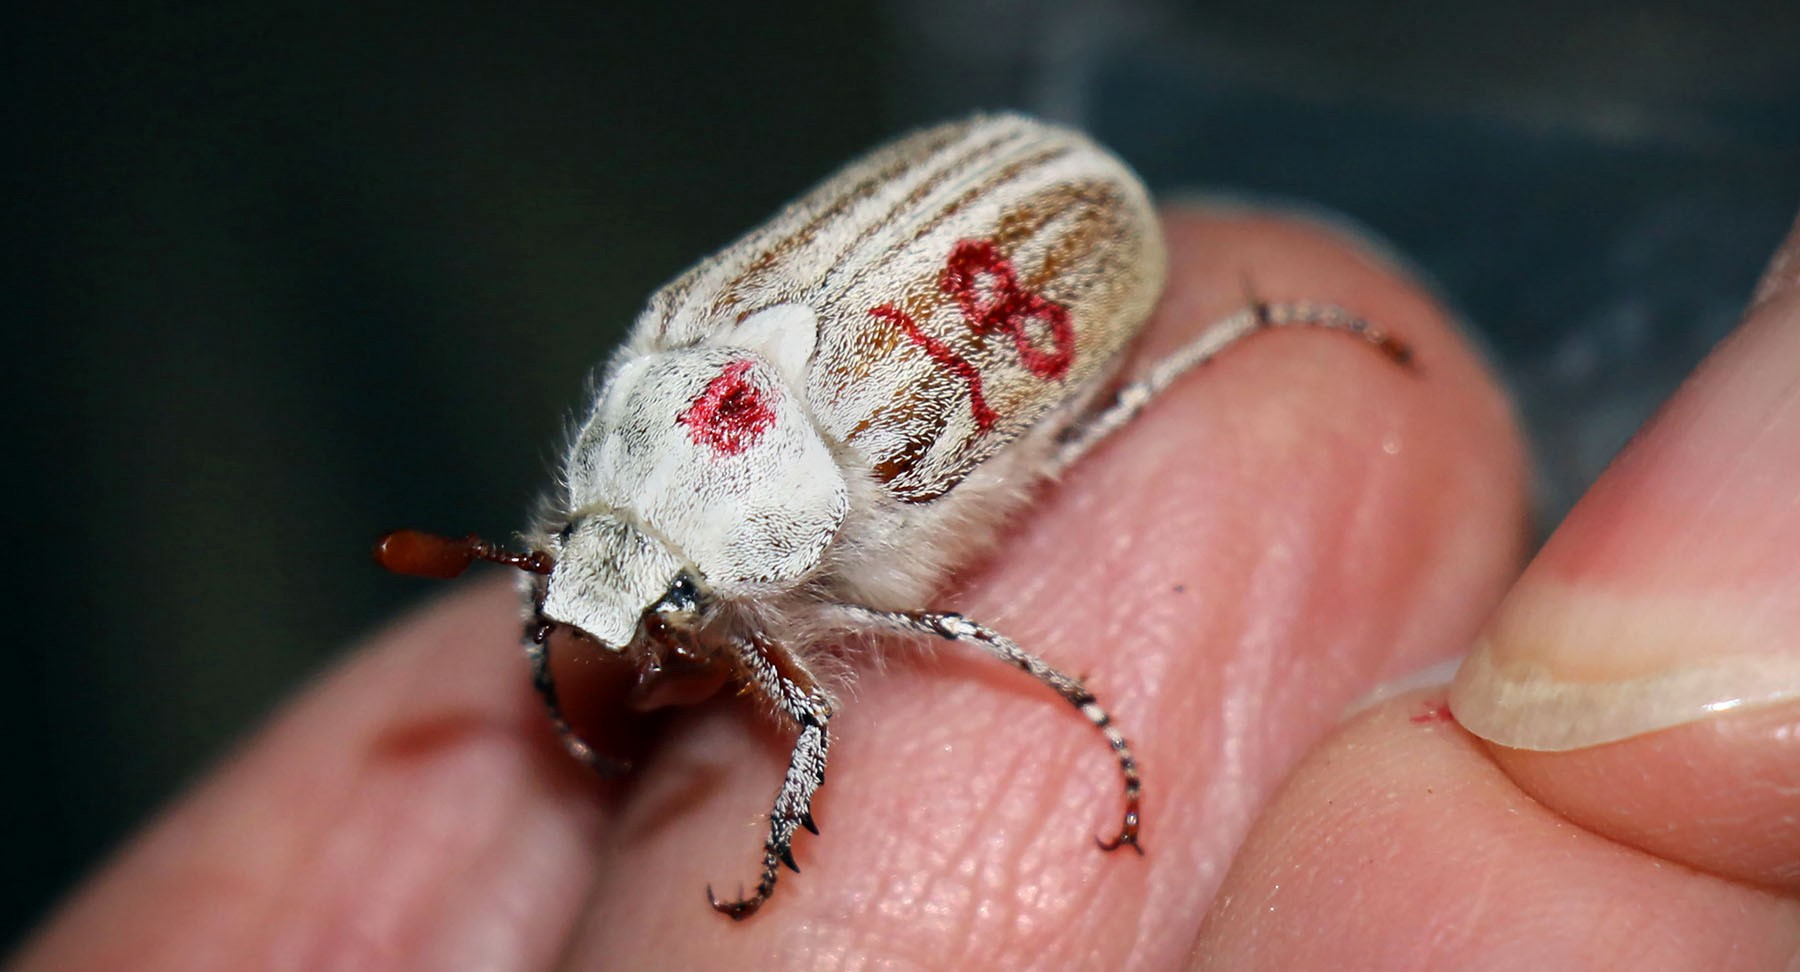 a white beetle that's tagged with the number 18 on a biologist's hand